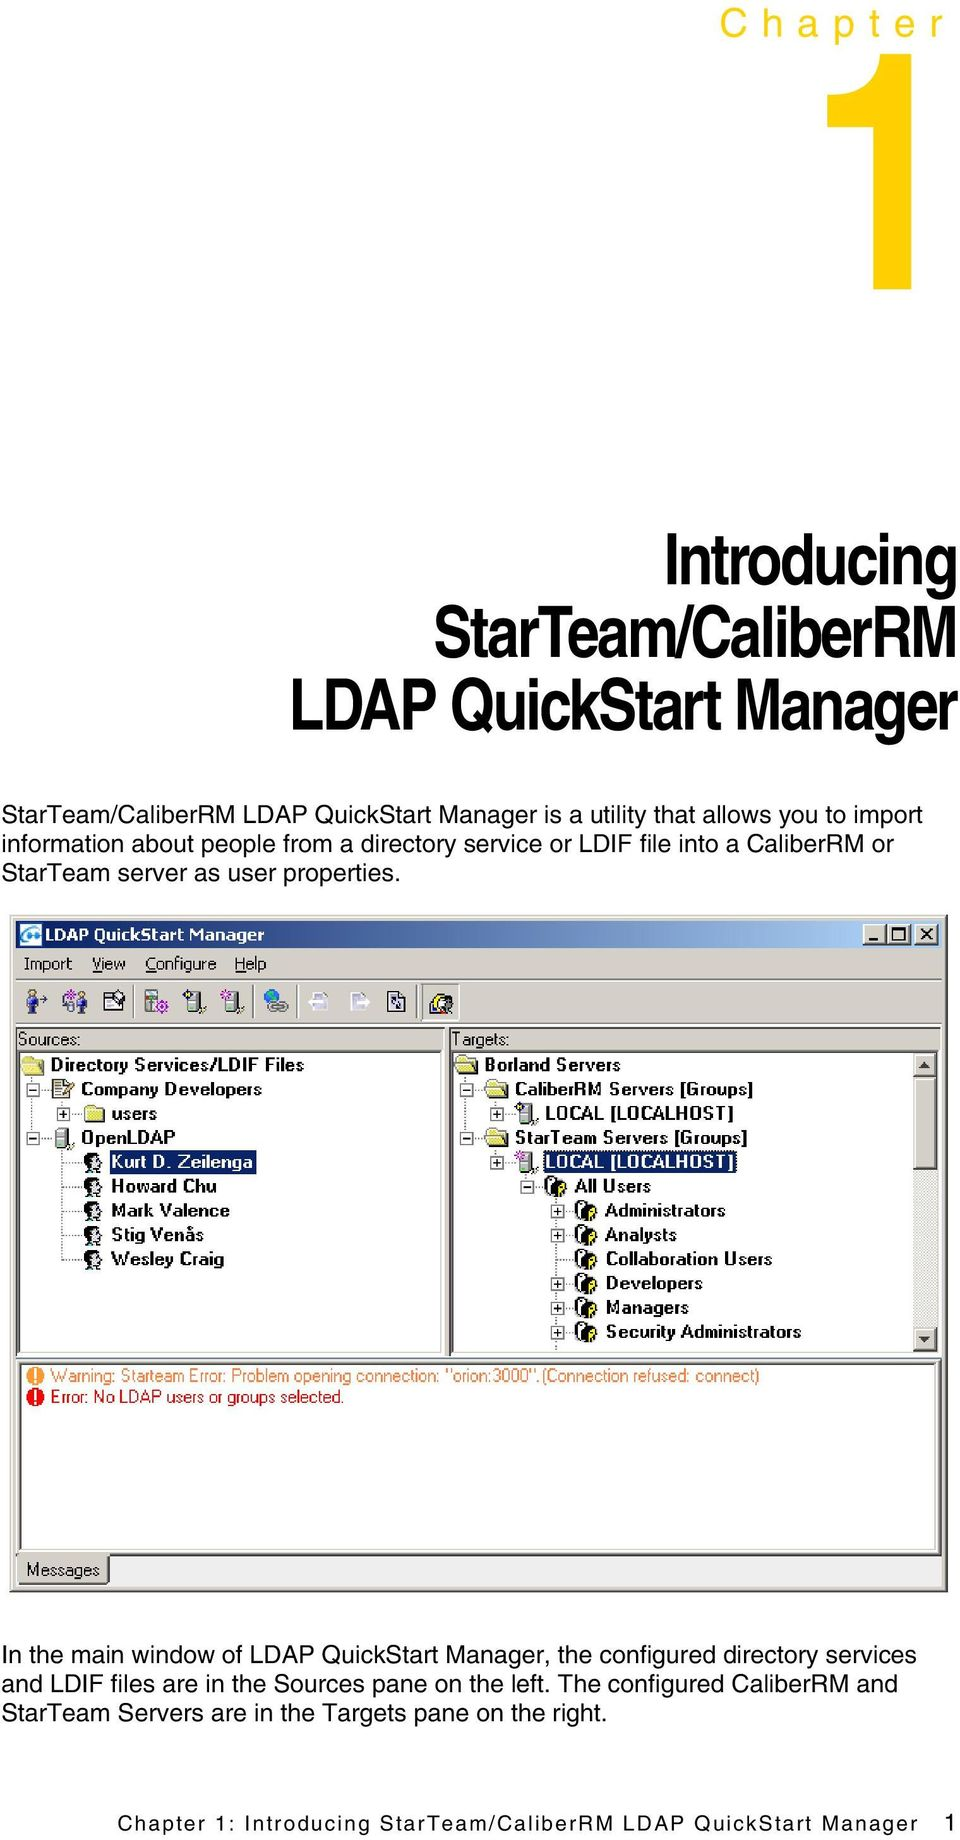 In the main window of LDAP QuickStart Manager, the configured directory services and LDIF files are in the Sources pane on the left.